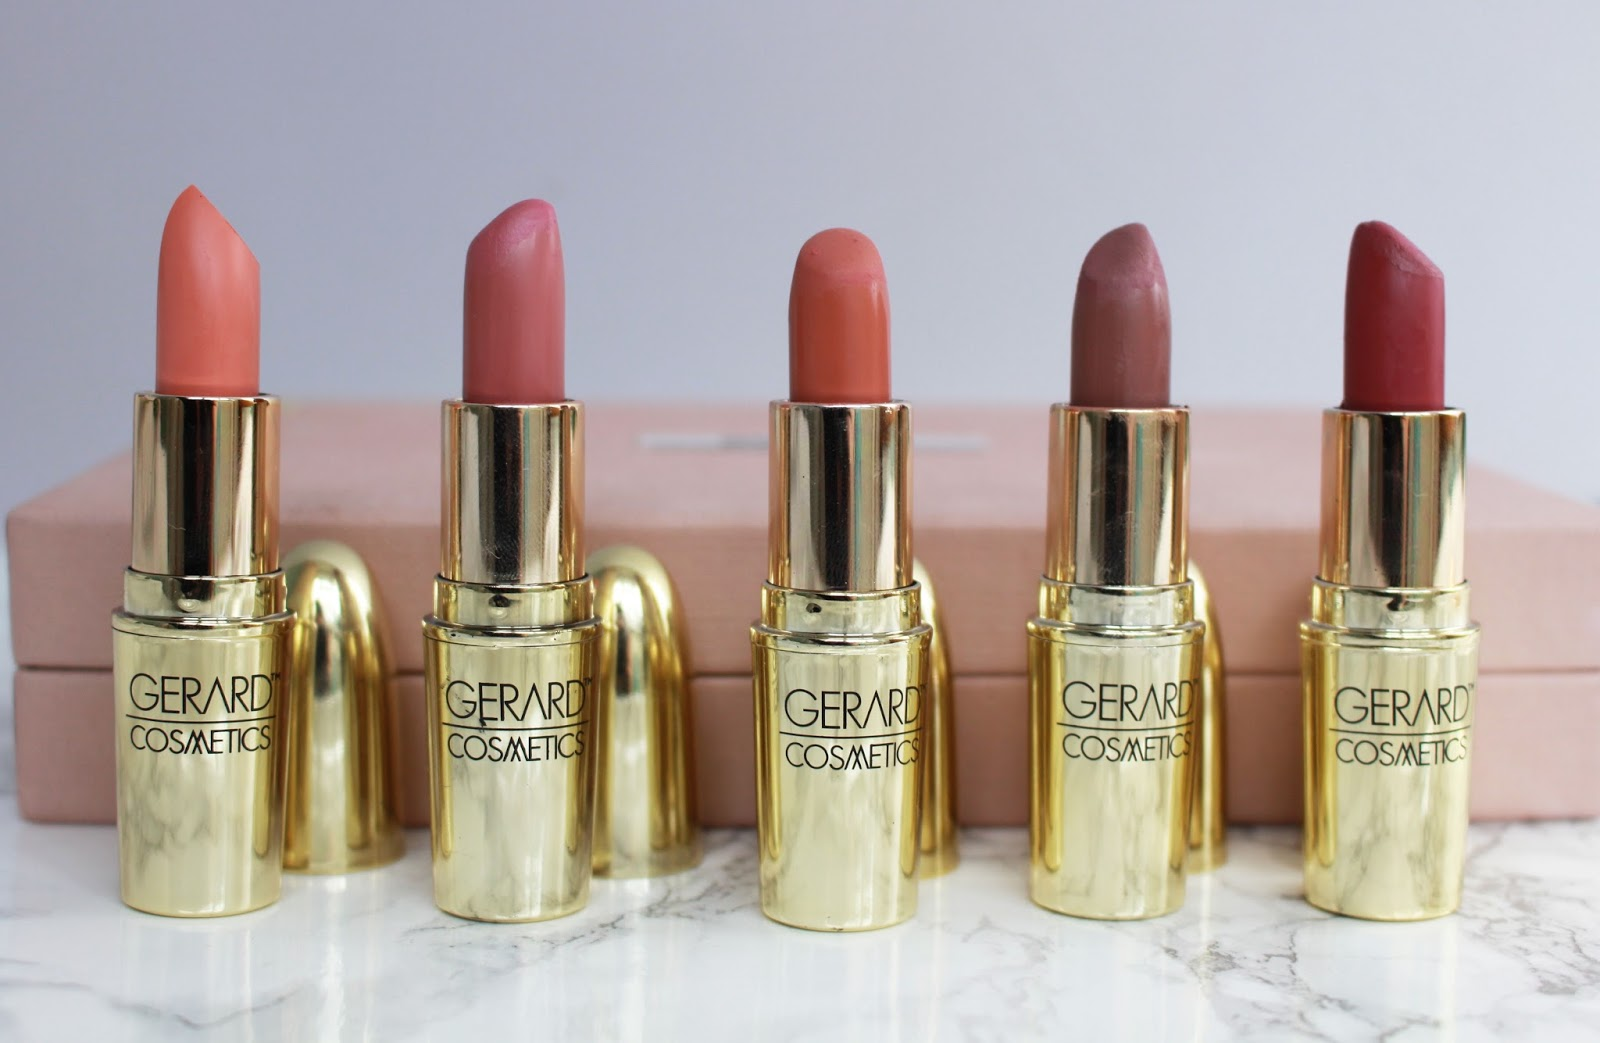 Gerard Cosmetics UK, Lipstick swatches, gerard cosmetics swatches, budget beauty, best nude lipstick